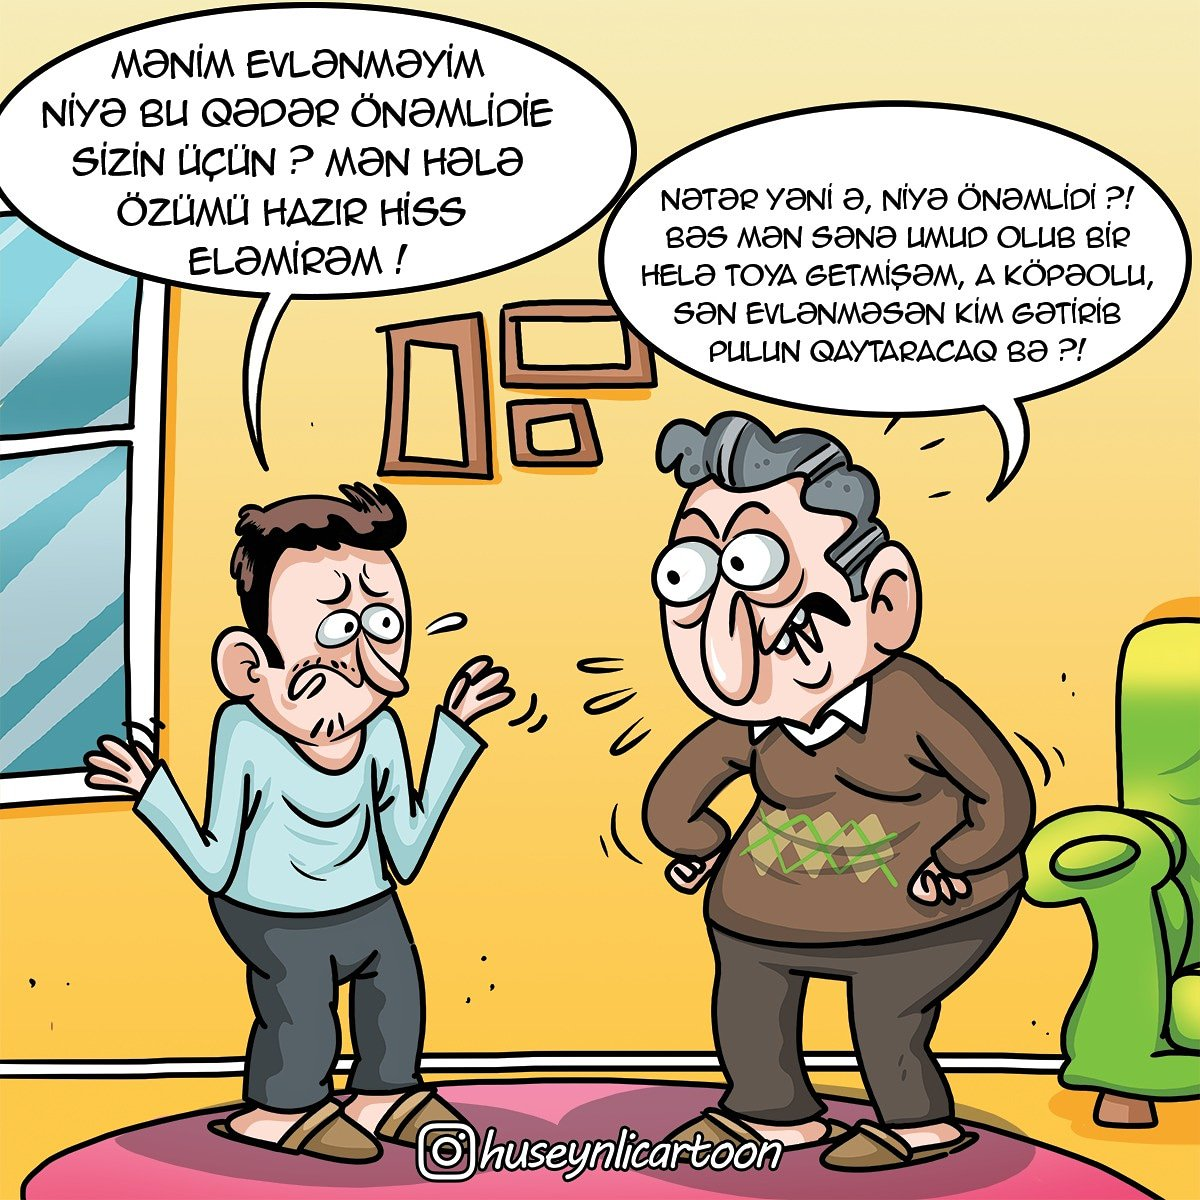 #huseynlicartoon #Bakı #Azərbaycan #Azerbaijan #Baku #FəridHüseynli  #Türkiye #aztagram #karikatura  #caricature  #cartoon #Mizah #illustration